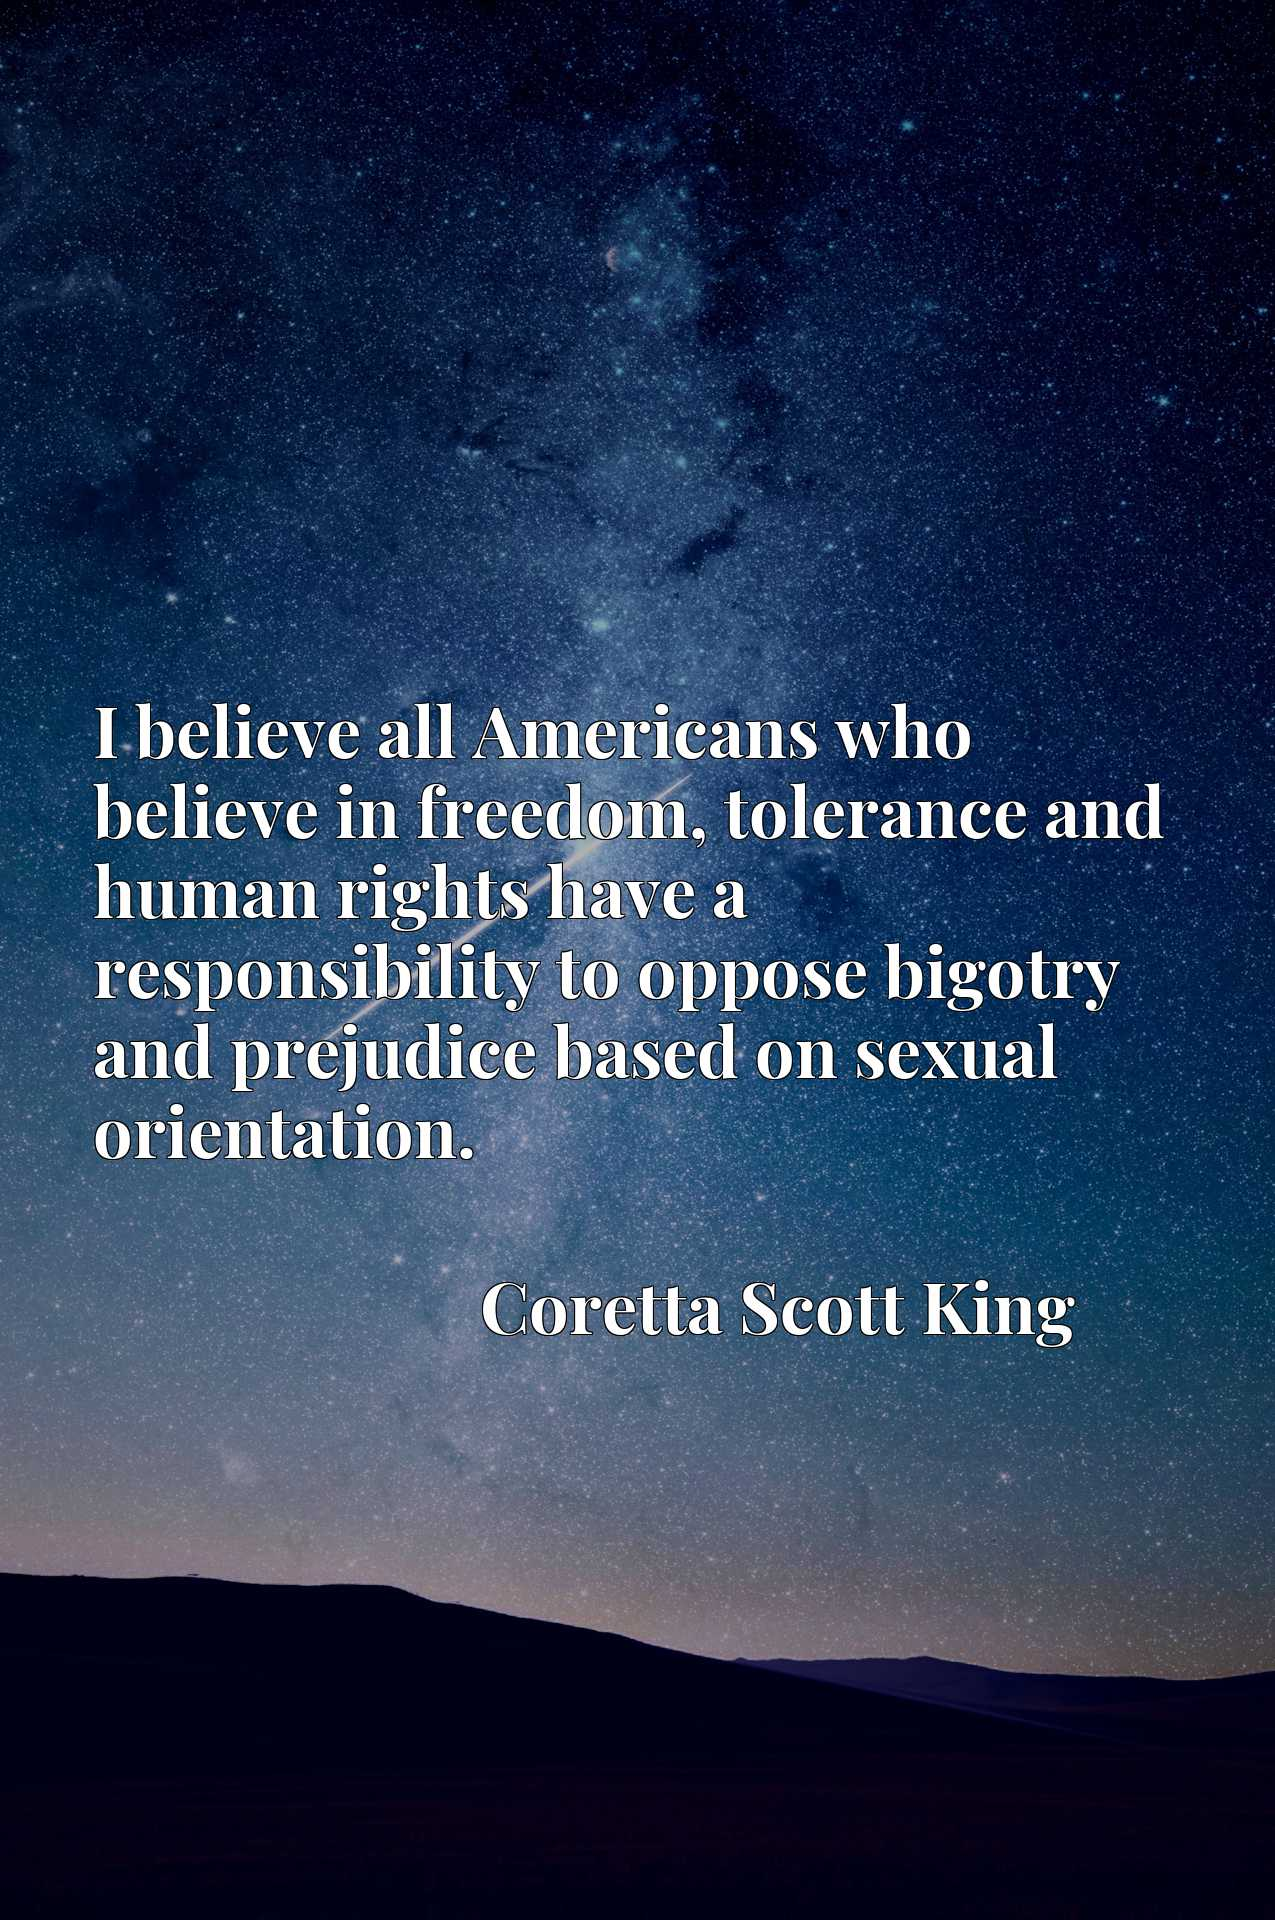 I believe all Americans who believe in freedom, tolerance and human rights have a responsibility to oppose bigotry and prejudice based on sexual orientation.